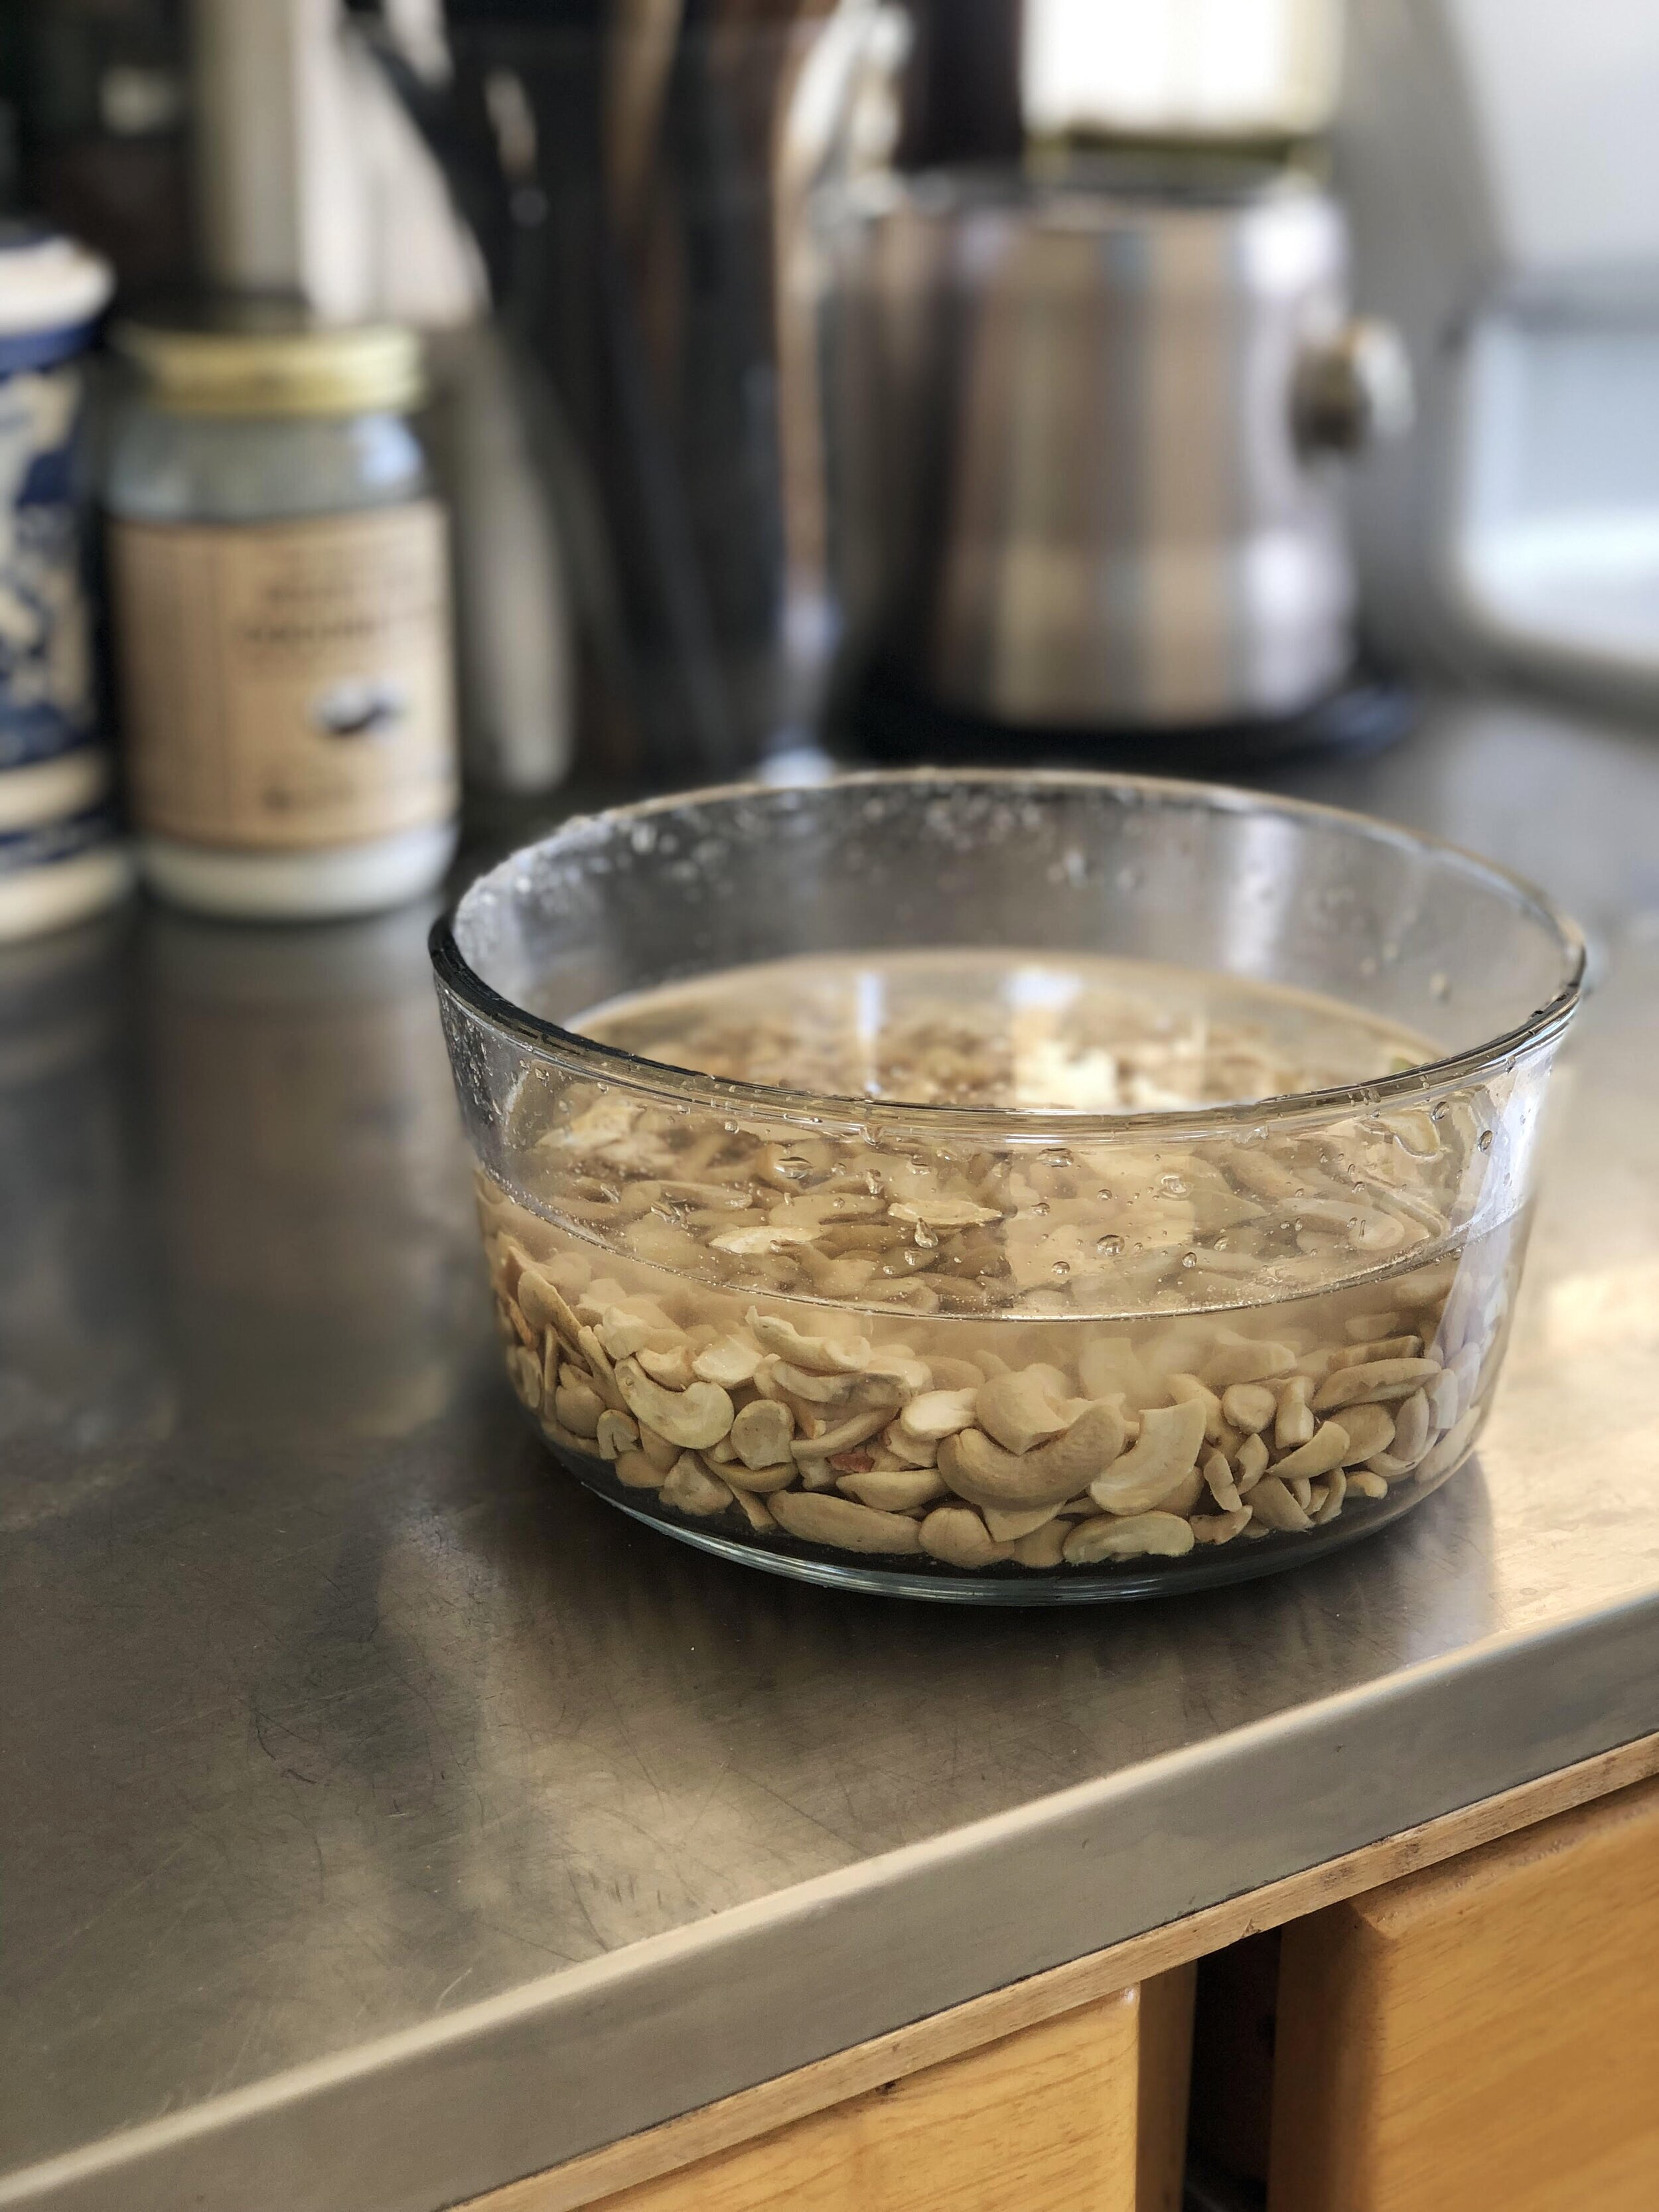 For best results, soak overnight. Or at least 4 hours (minimum). When you soak nuts, it helps release some beneficial enzymes and is easier to digest.